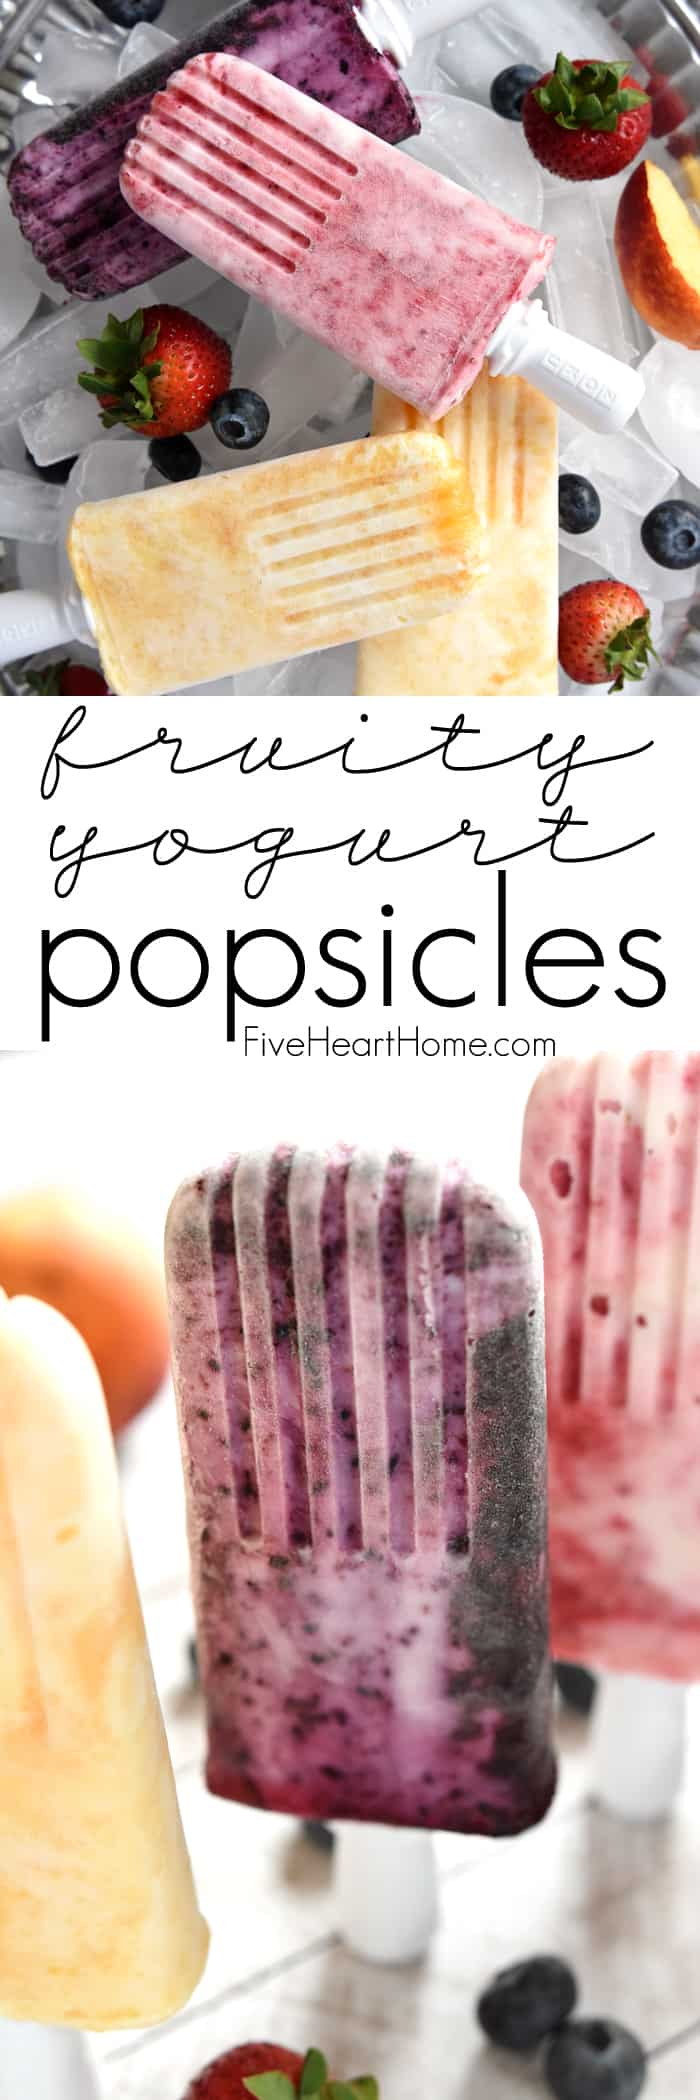 Fruity Yogurt Popsicles Collage with Text Overlay